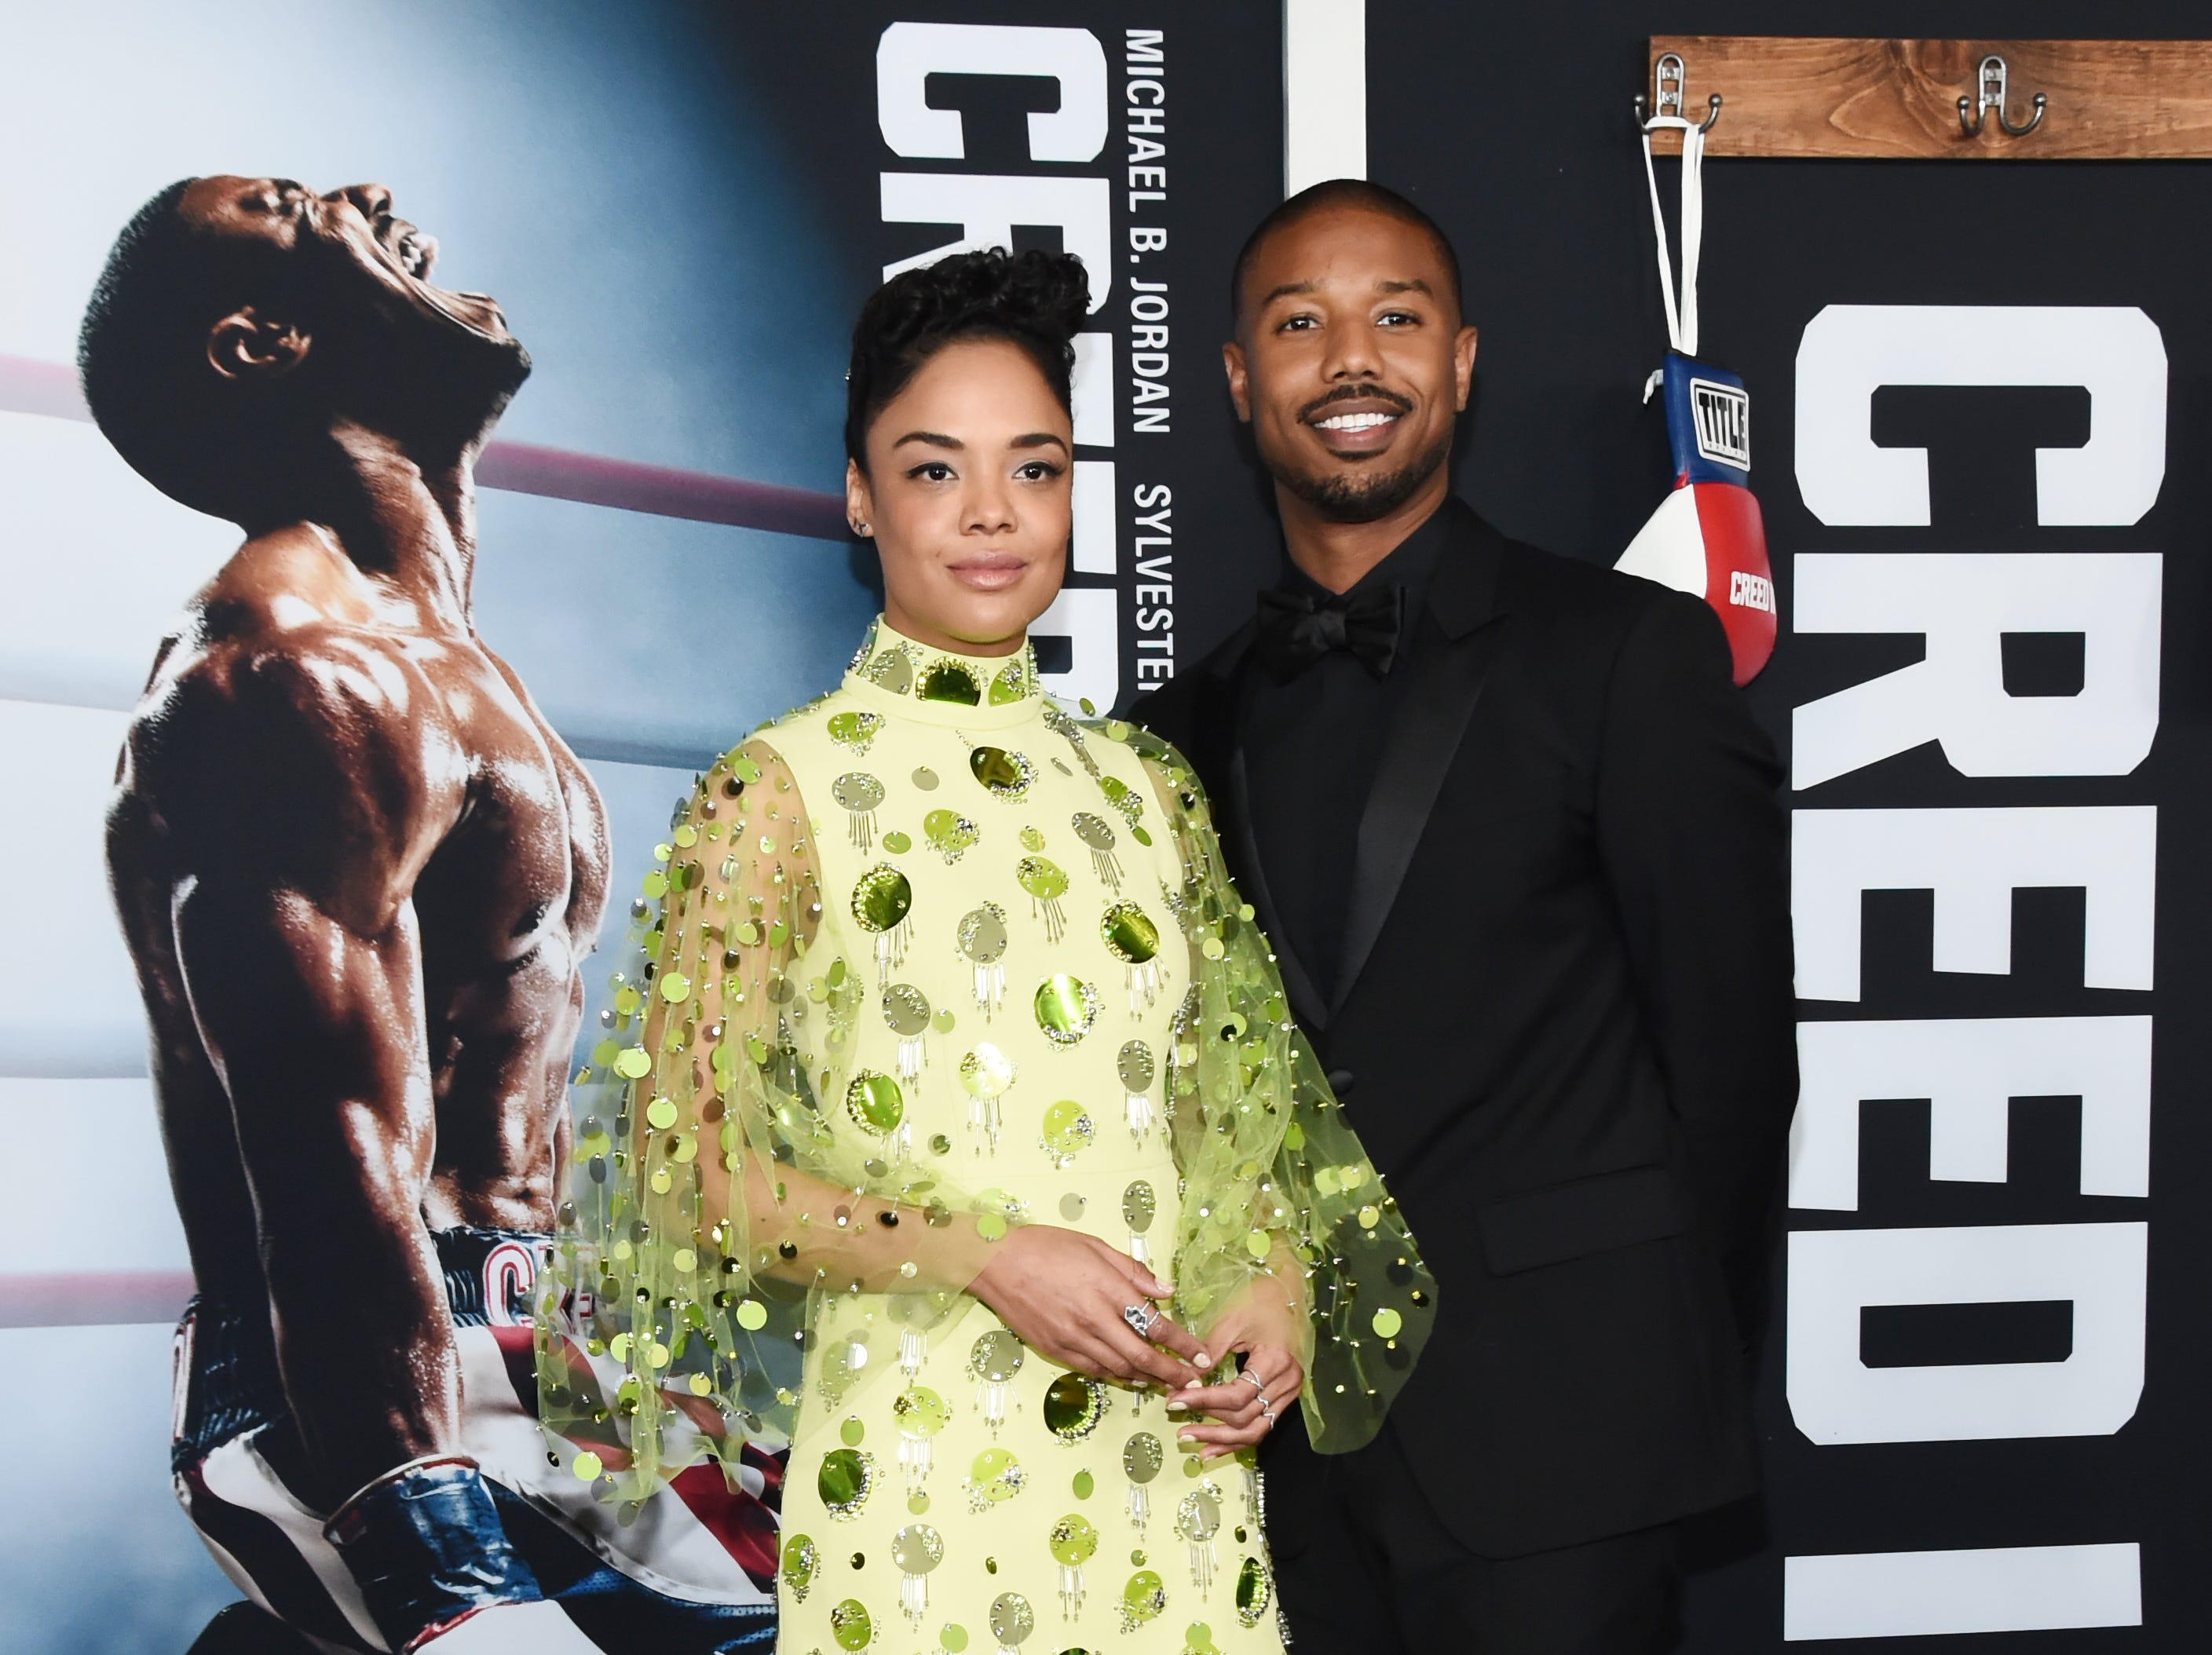 NEW YORK, NEW YORK - NOVEMBER 14: Tessa Thompson and Michael B. Jordan attend the 'Creed II' New York Premiere at AMC Loews Lincoln Square on November 14, 2018 in New York City. (Photo by Daniel Zuchnik/WireImage) ORG XMIT: 775258752 ORIG FILE ID: 1067714112